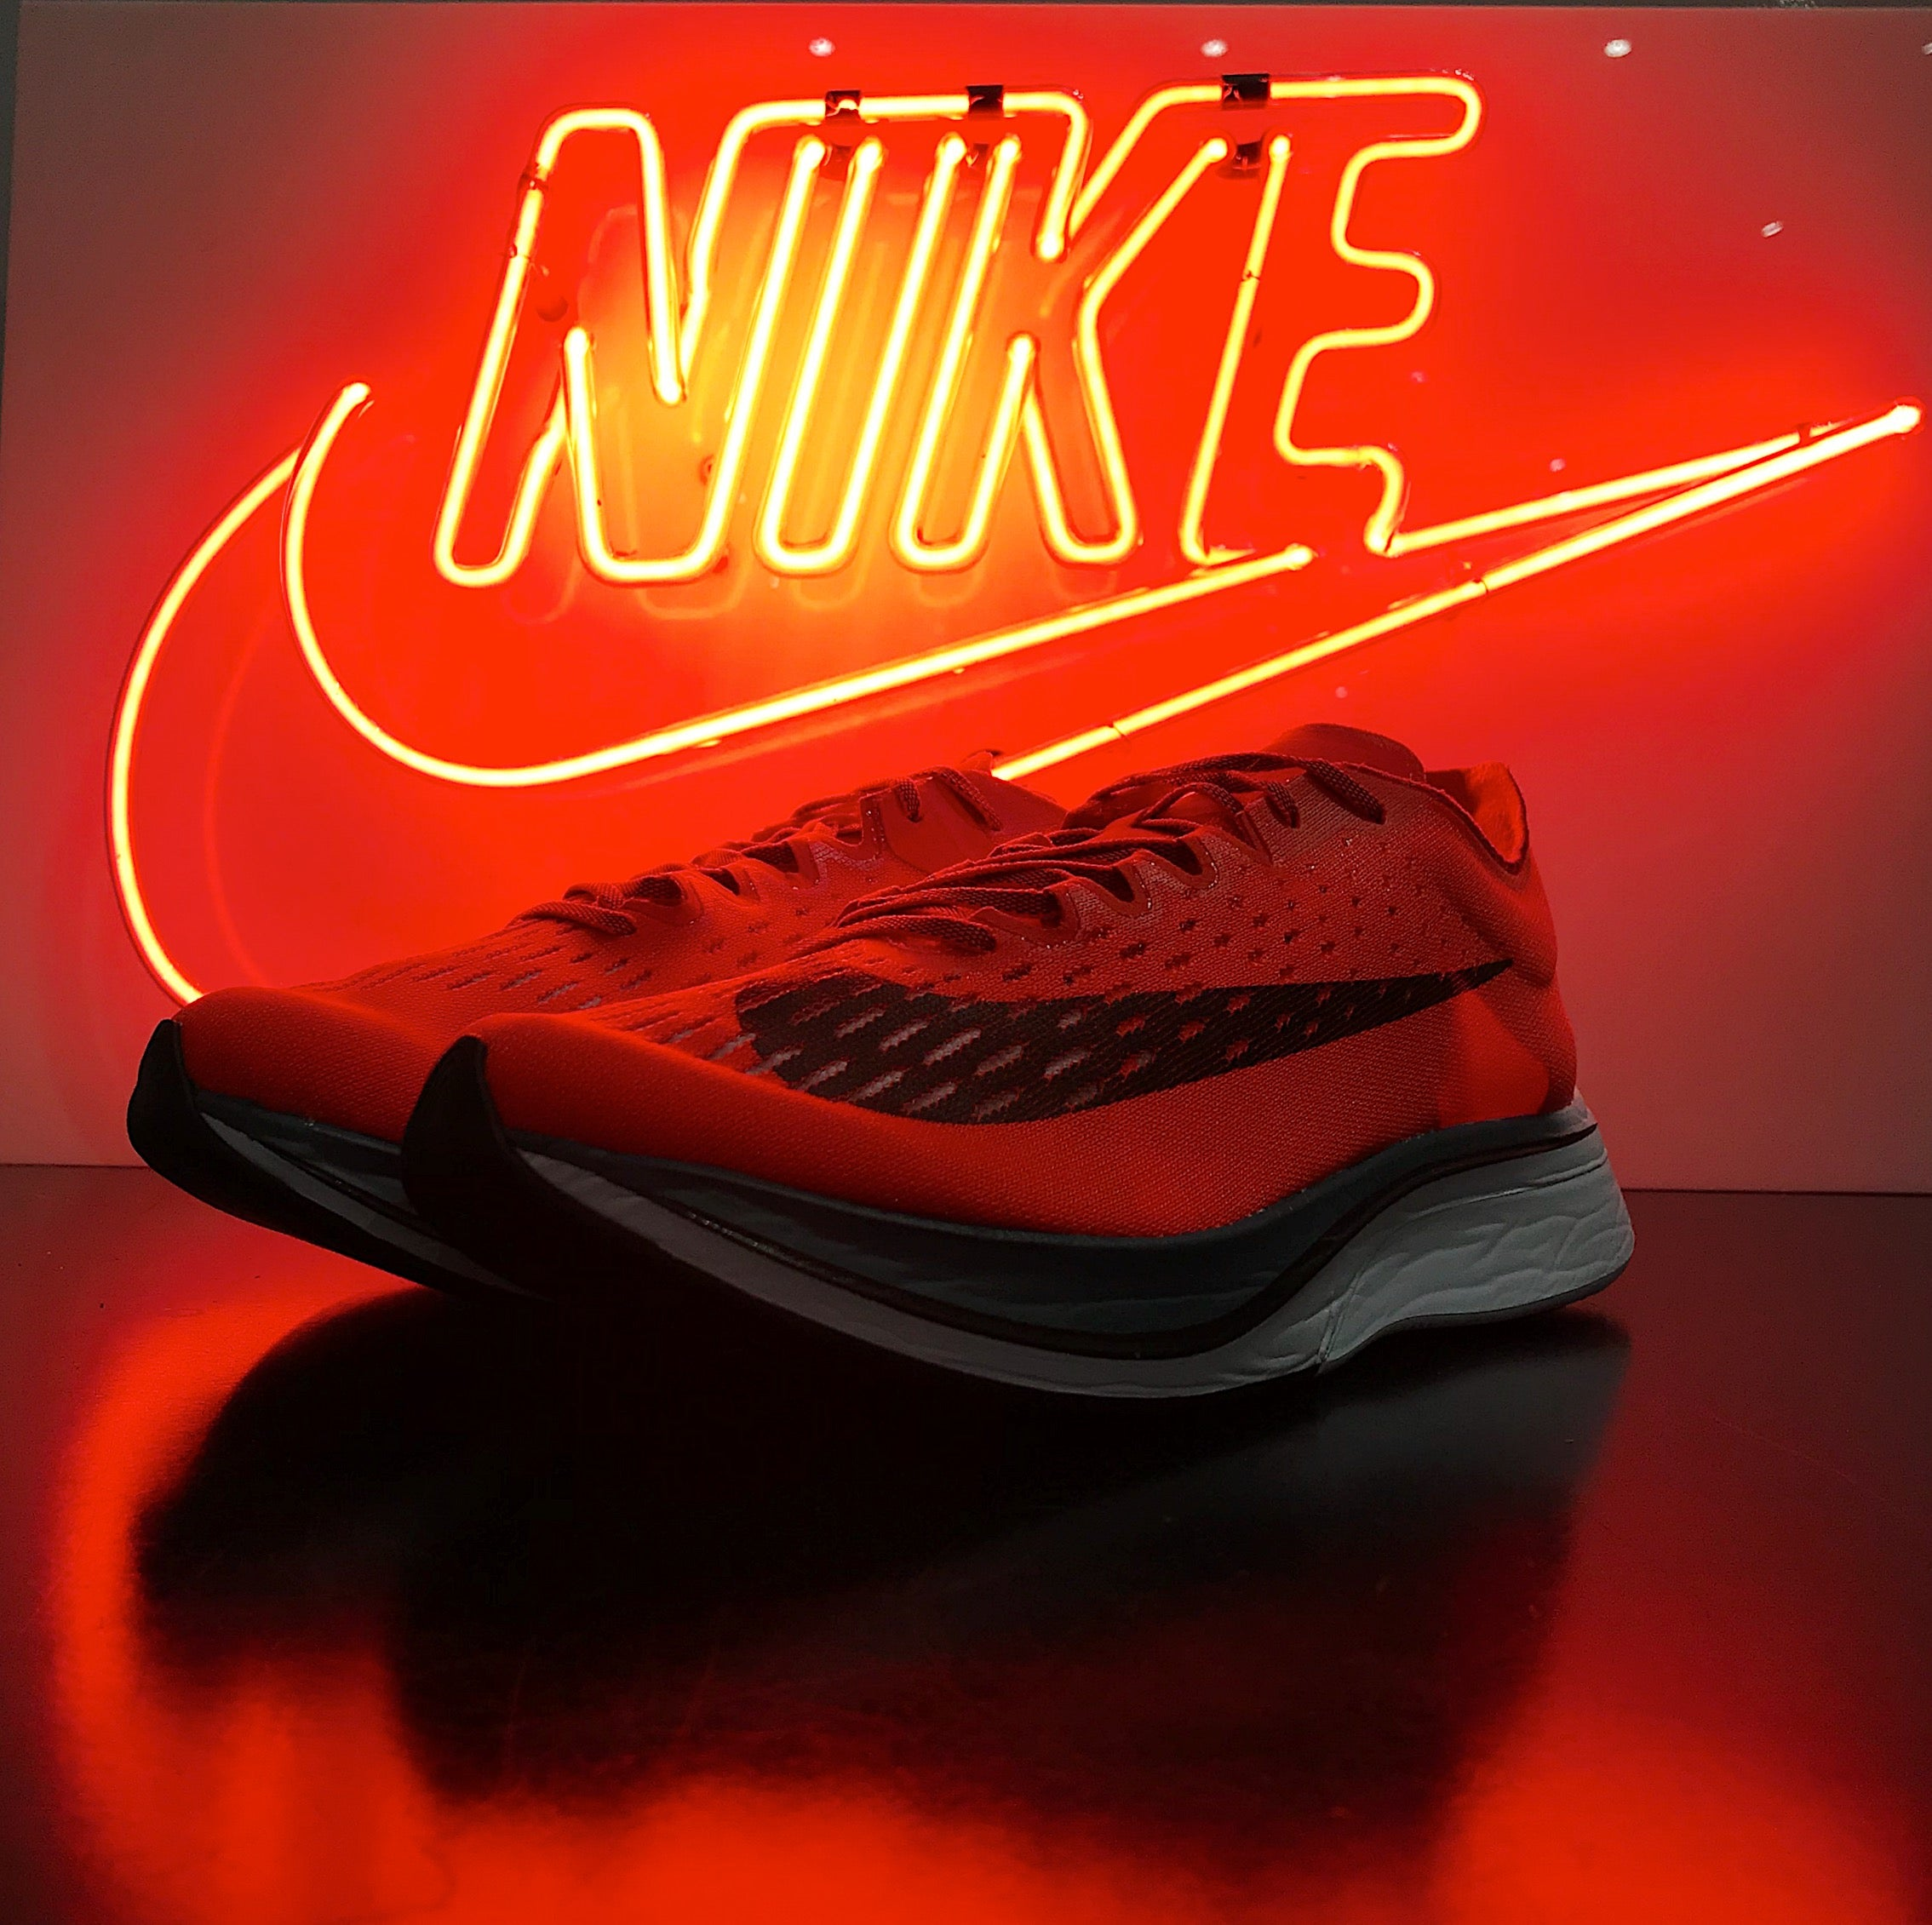 Nike Zoom Vapor Fly 4% with Nike Neon Sign